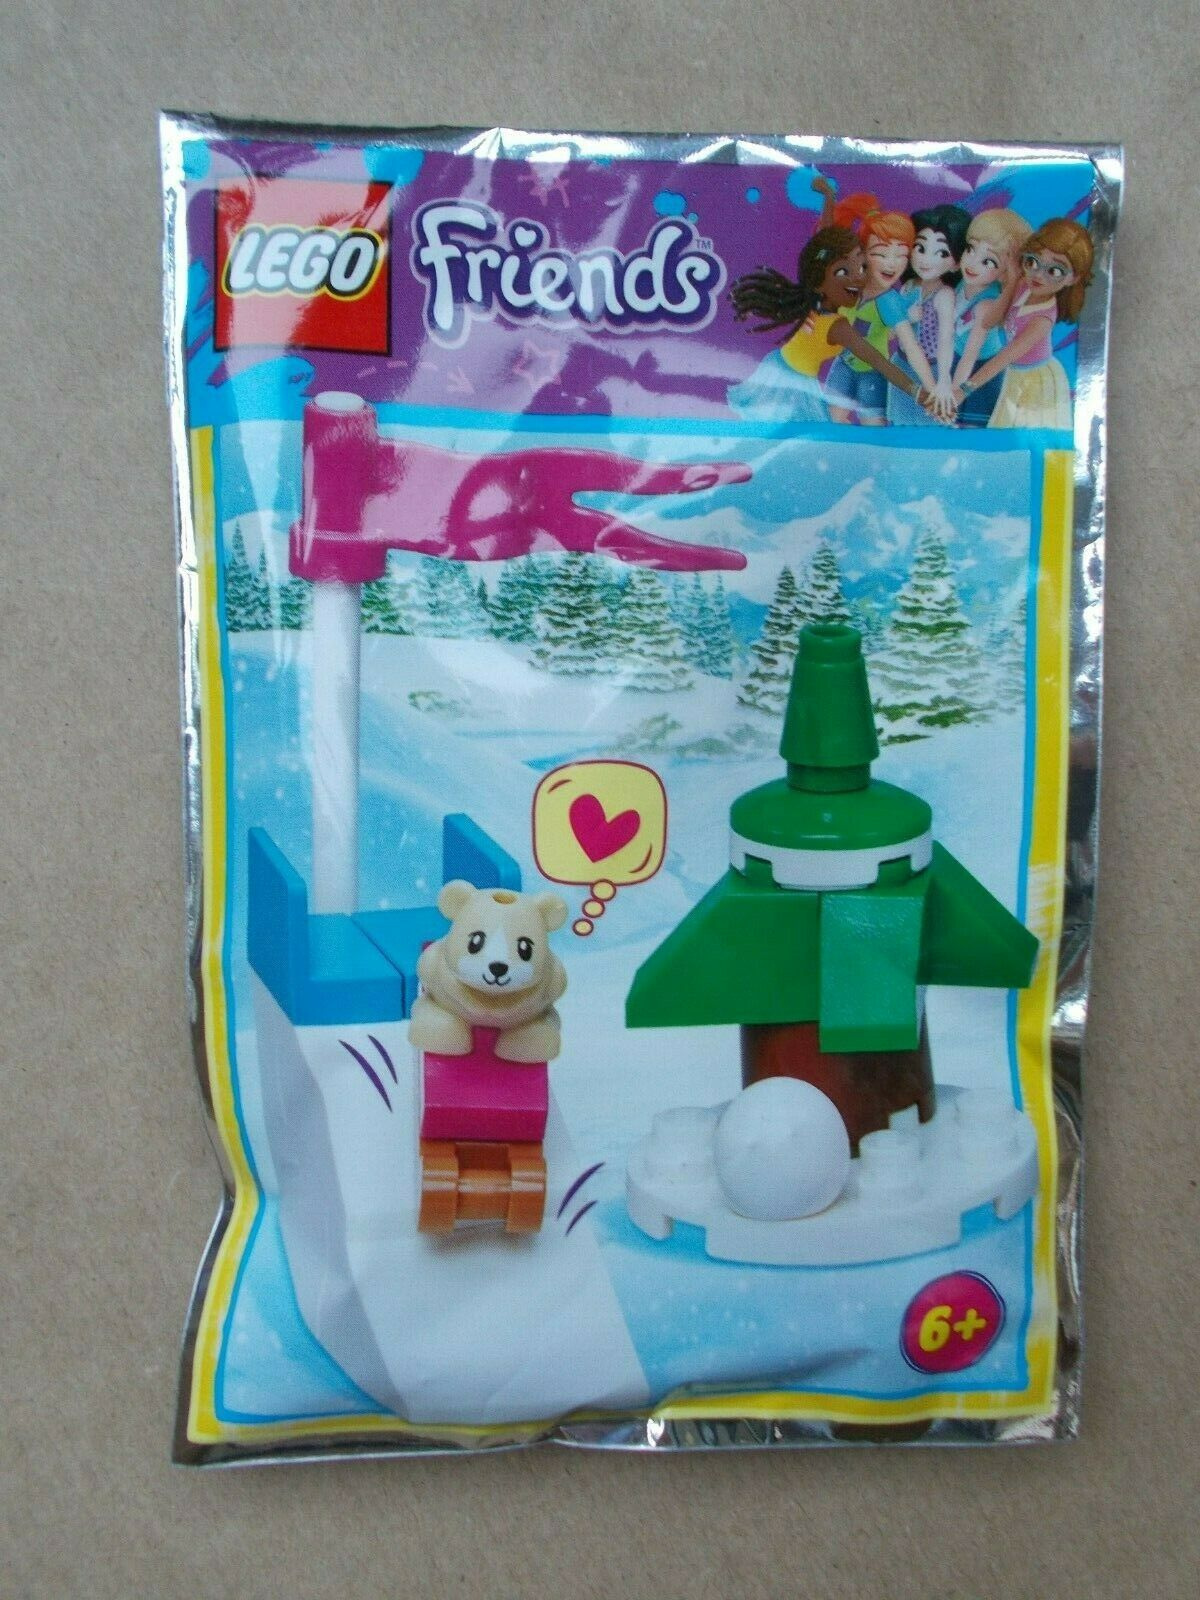 LEGO Friends Christmas Tree Foil Pack Set 561412 Bagged